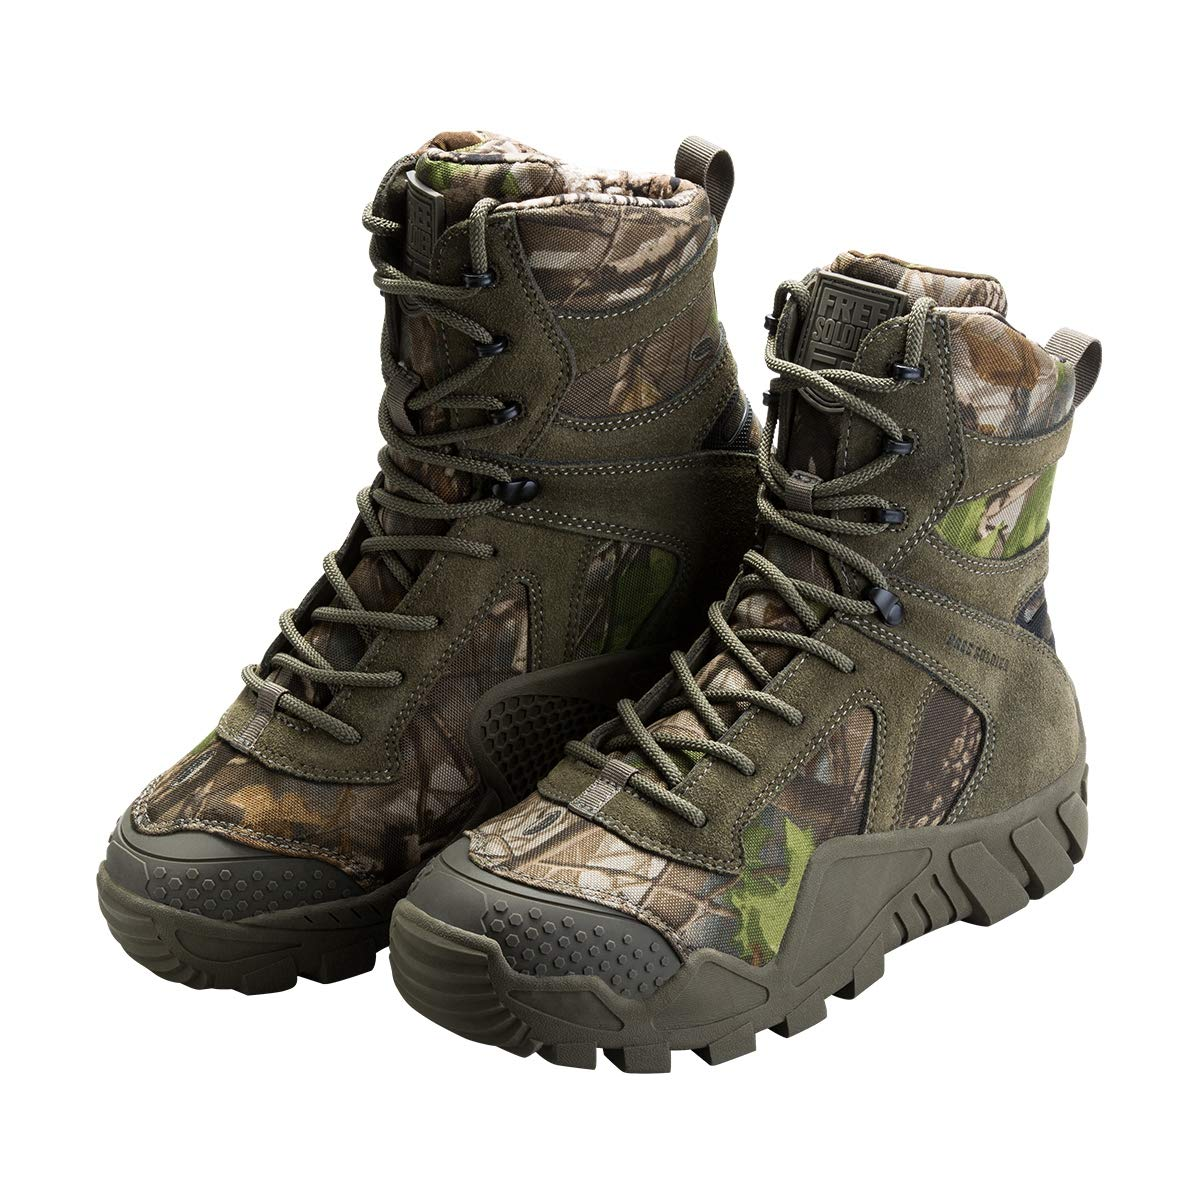 FREE SOLDIER Men's Tactical Boot All Terrain Suede Leather Shoes Outdoor Hiking Military Boots (Camouflage, 10 M US)